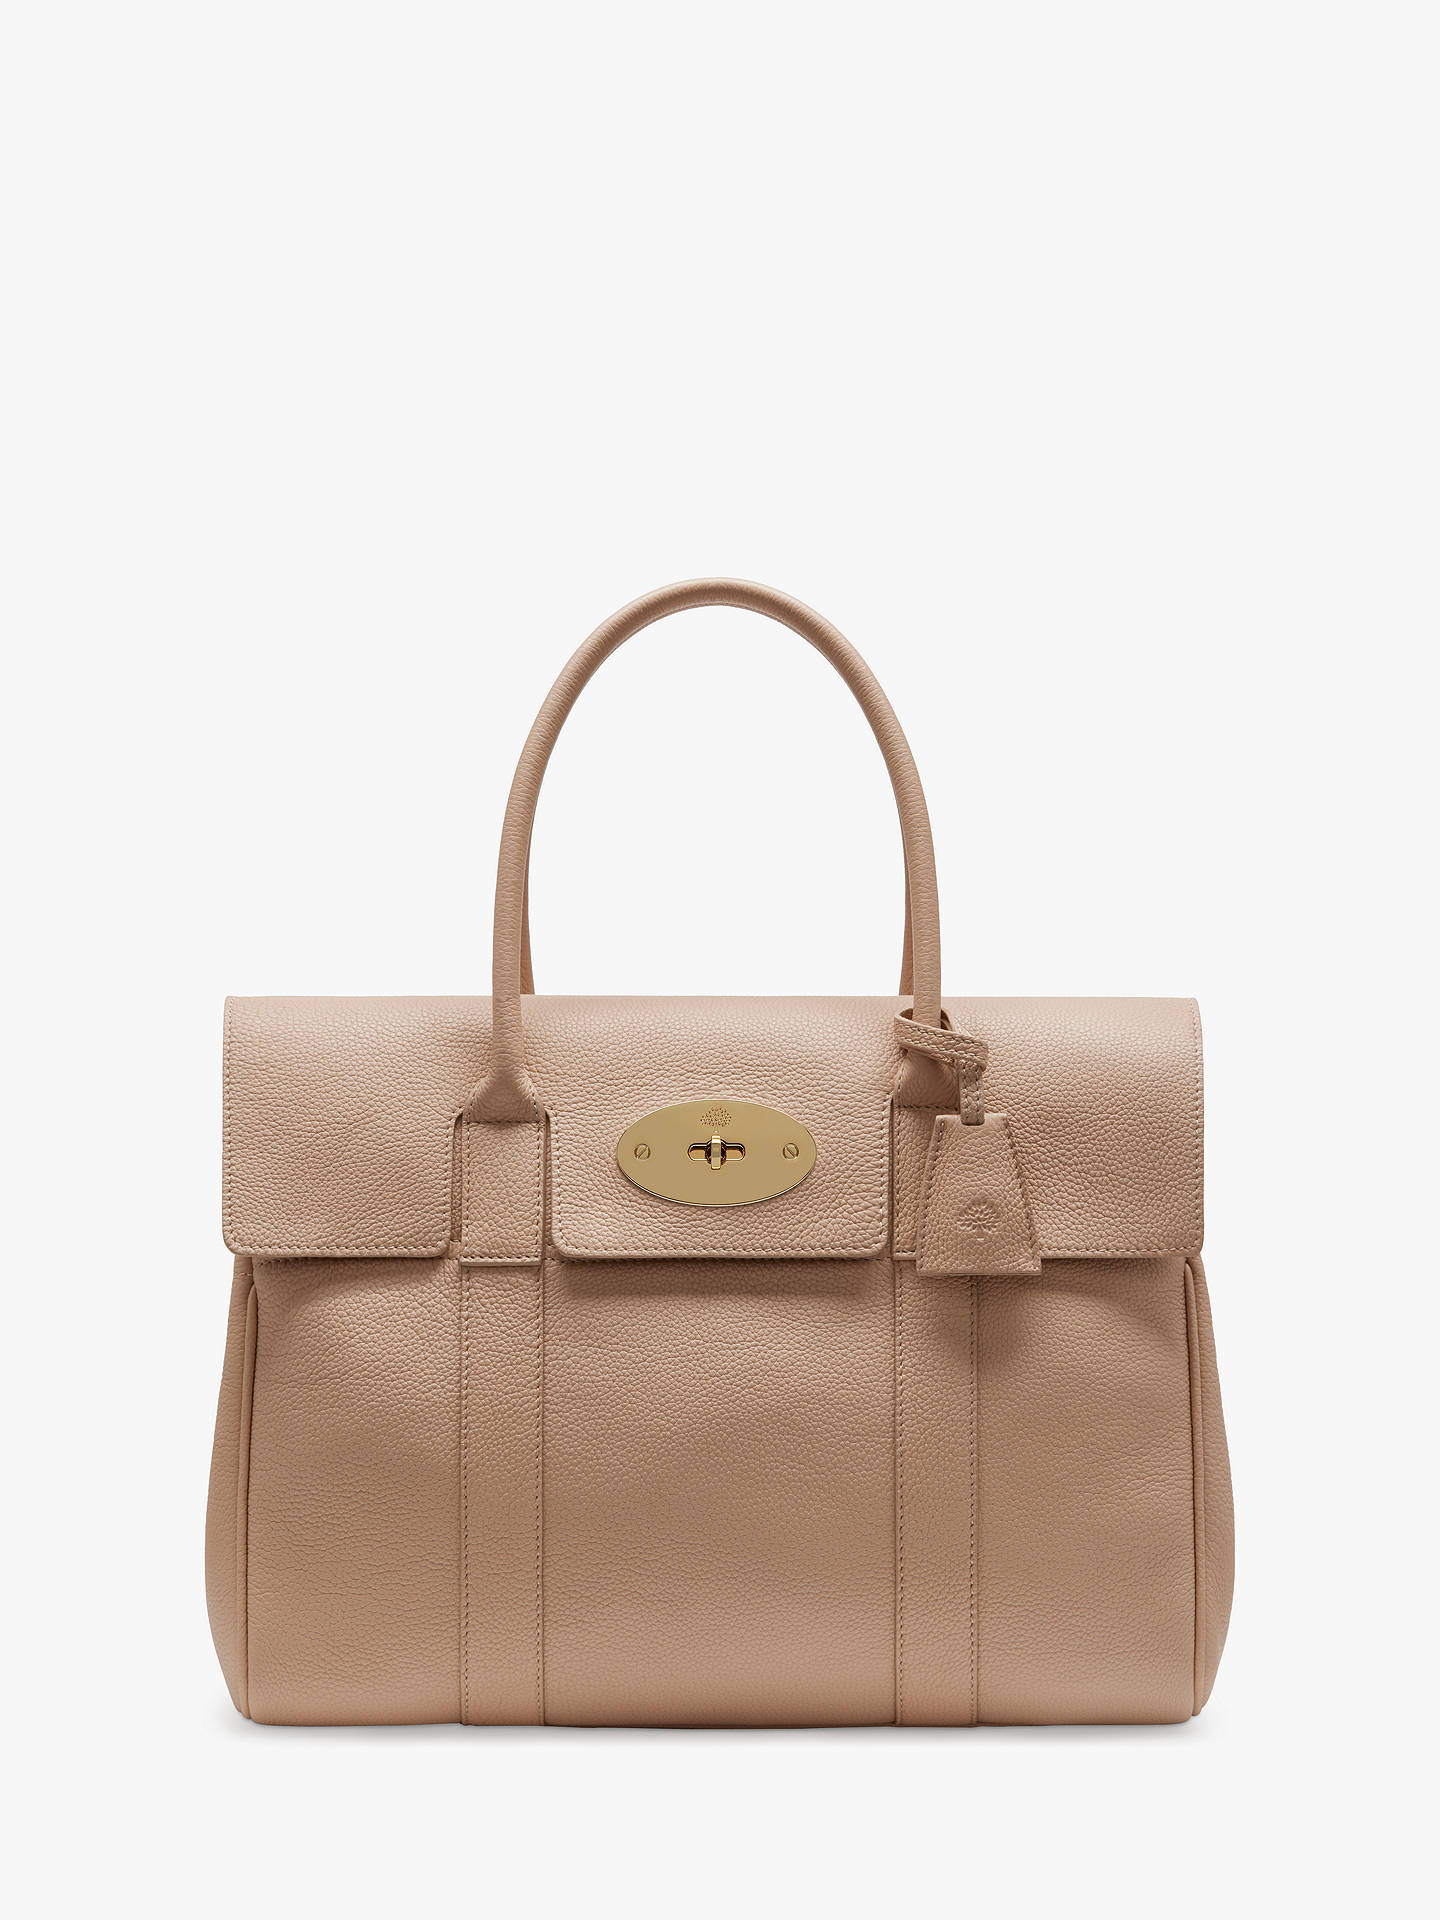 aaa8c30fa6e BuyMulberry Bayswater Heritage Small Classic Grain Leather Handbag,  Rosewater Online at johnlewis.com ...